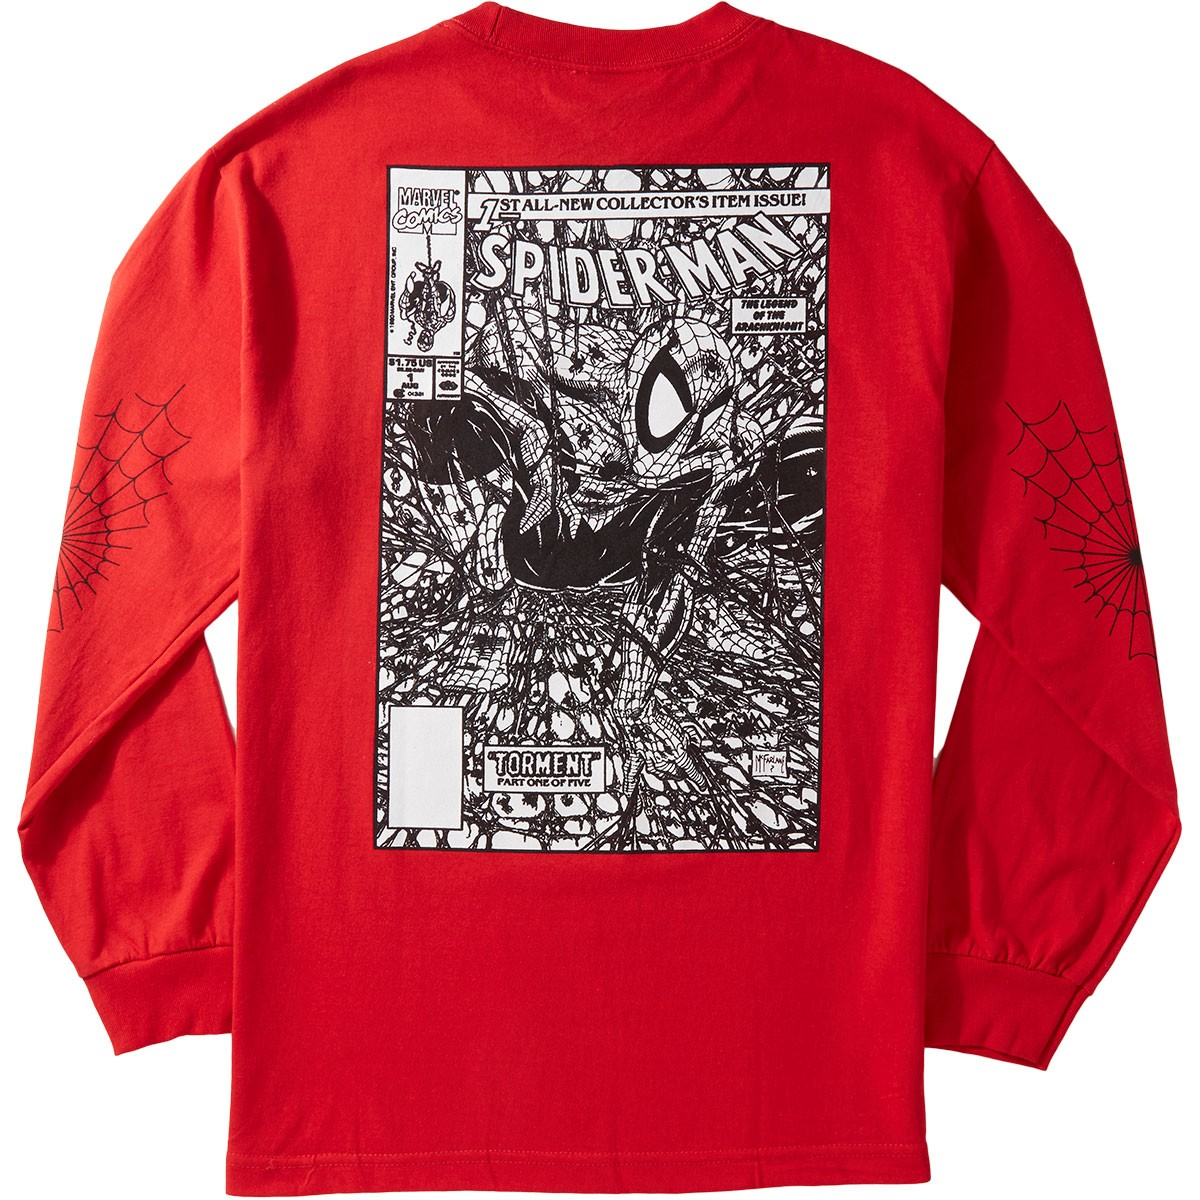 8eb2e5922 Grizzly,X,Spiderman,Longsleeve,T-Shirt,Vintage,Red,spider,man,marvel,spider- man